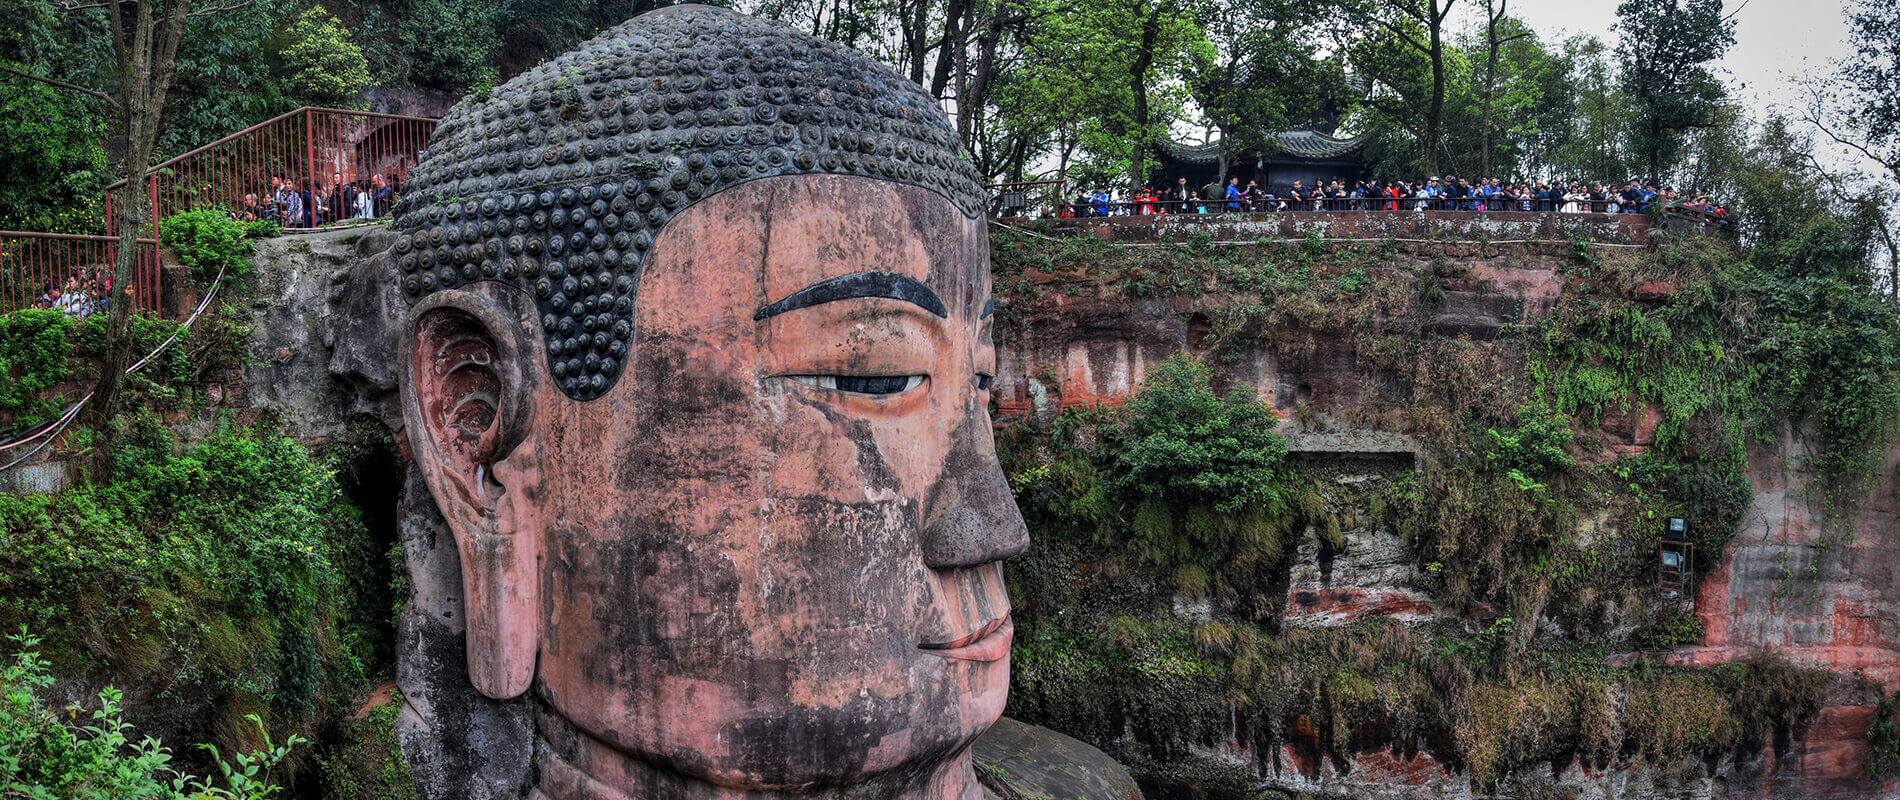 The Buddha of Leshan, a Majestic Colossus Carved in Rock